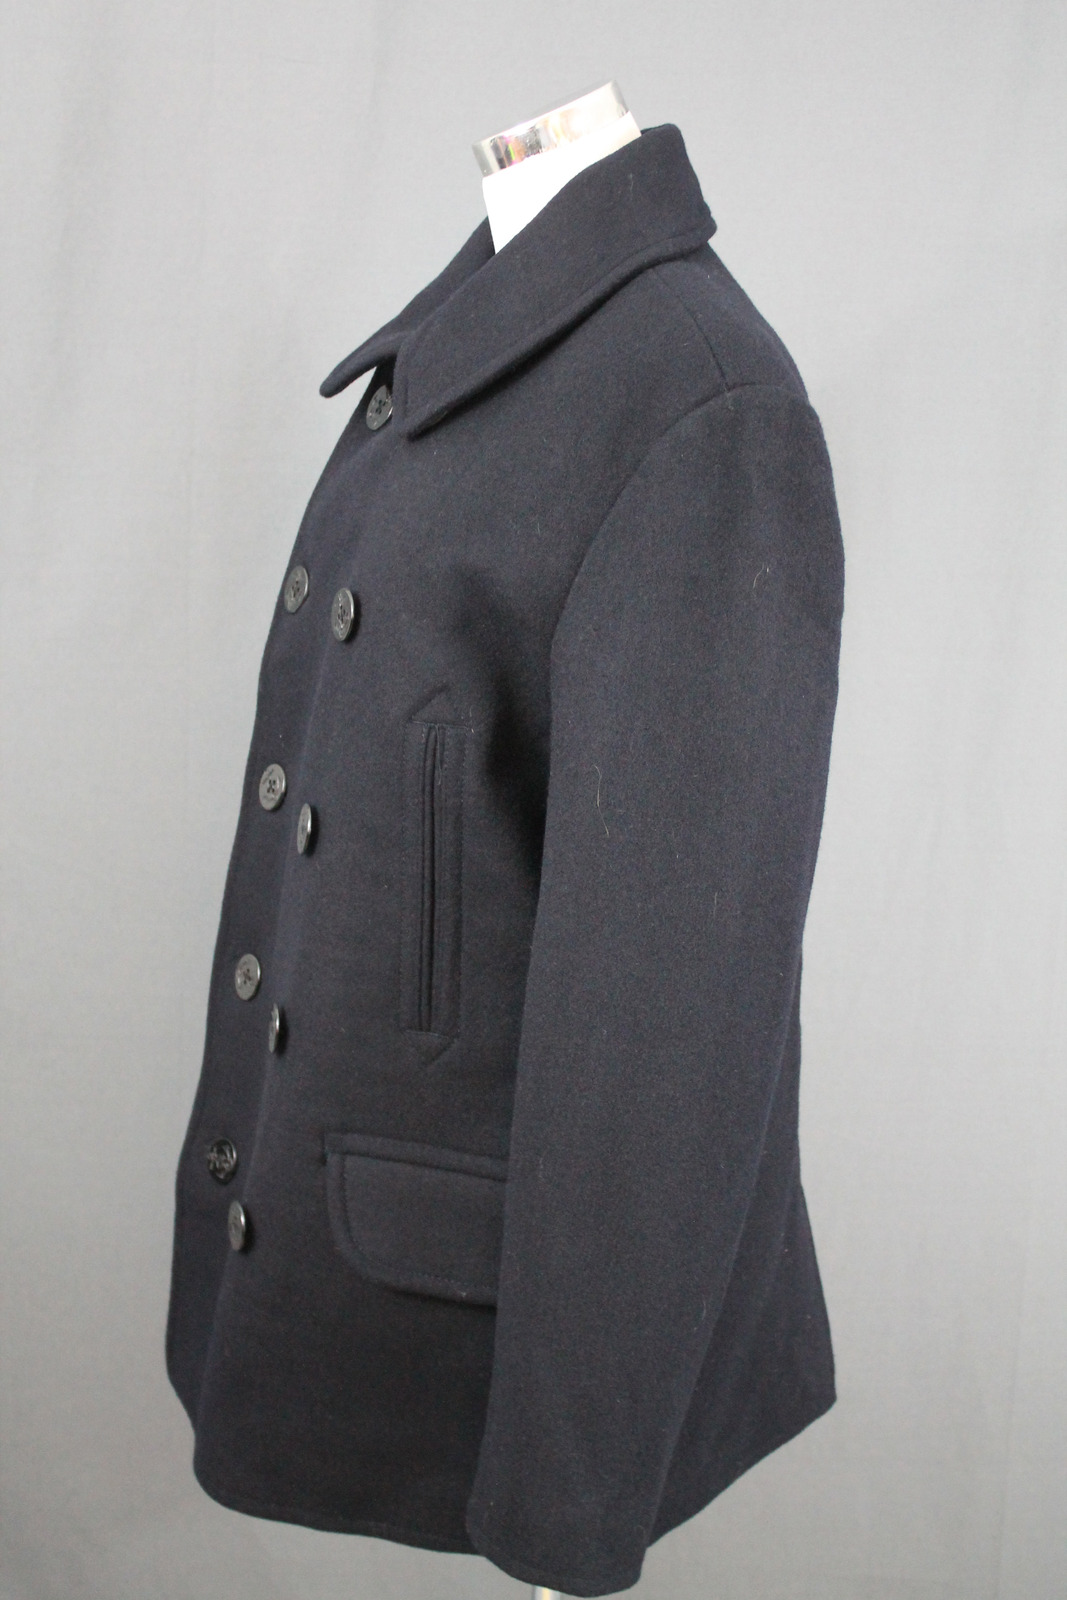 JCrew Mens Dock Peacoat $268 Wool XS Navy Winter Coat 05534 NWT | eBay